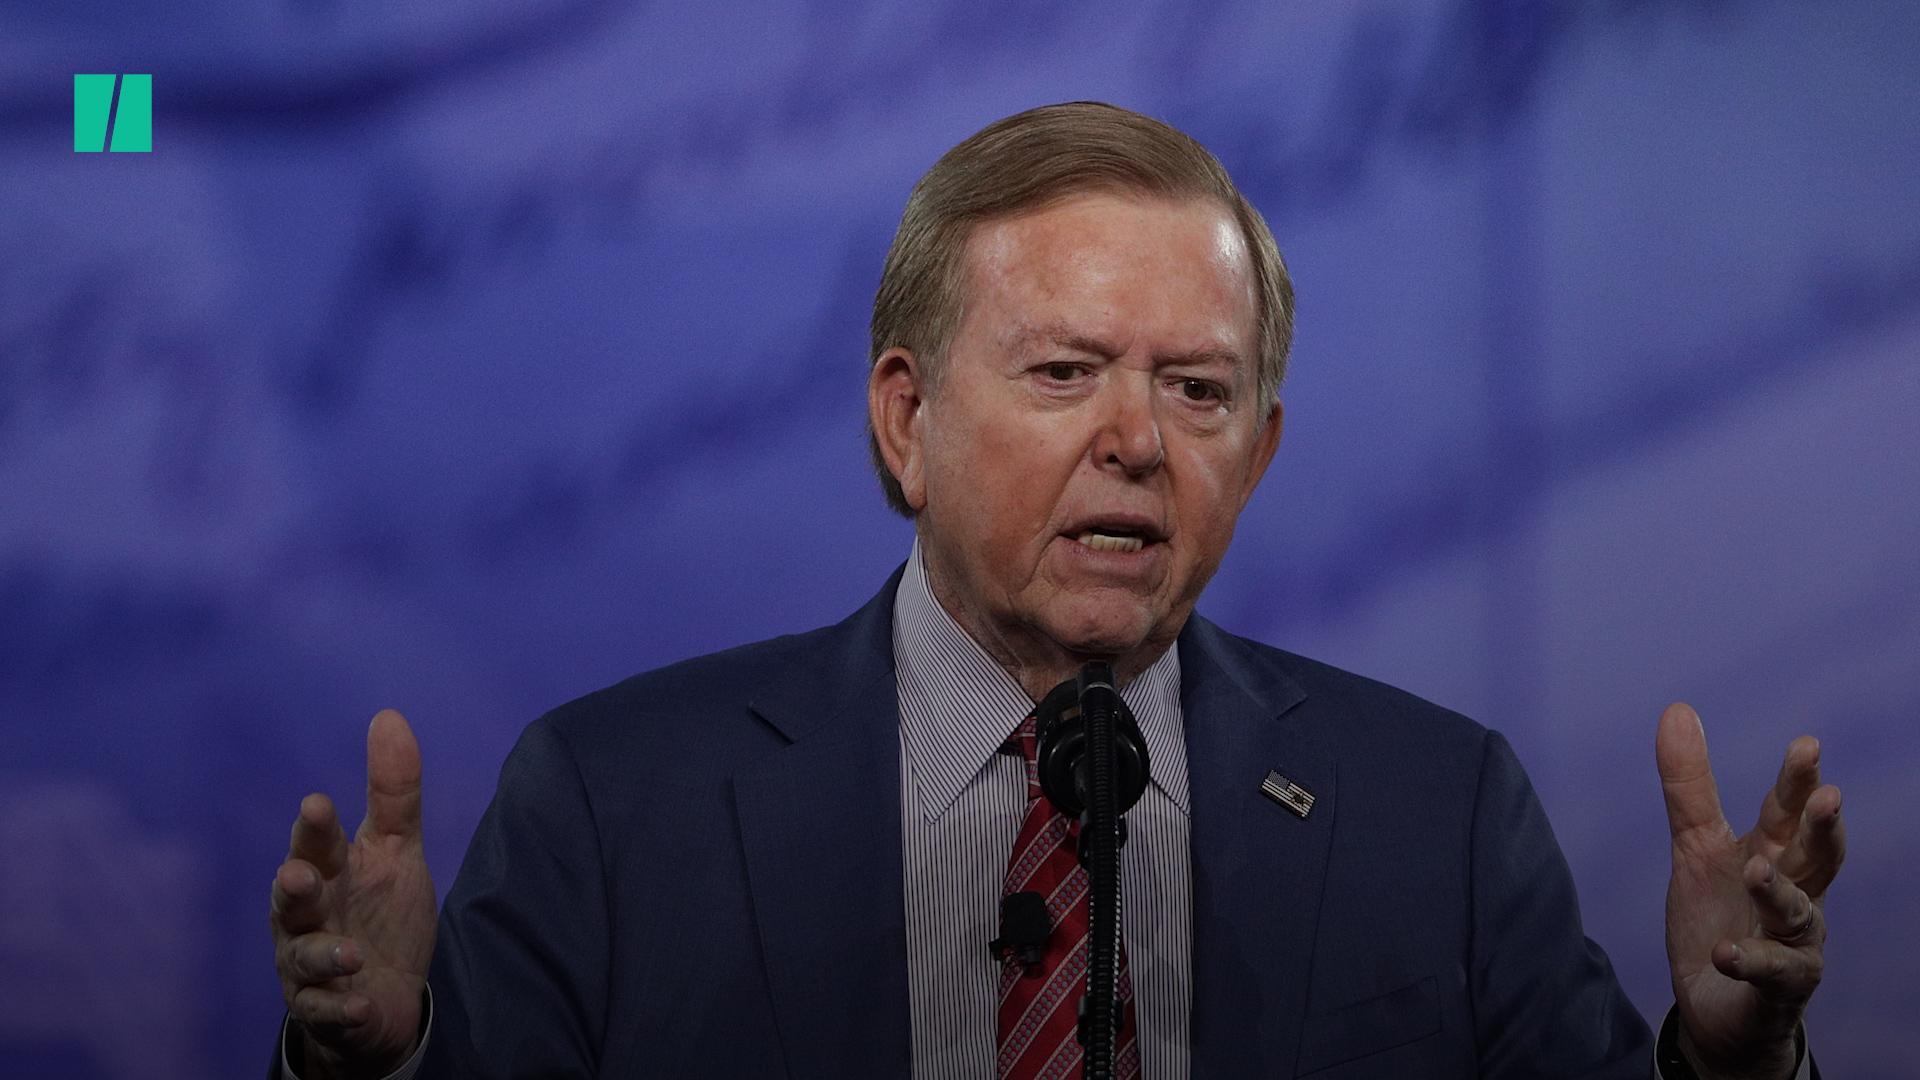 Lou Dobbs Slammed For Using Anti-Semitic 'Tentacles' Trope To Describe George Soros